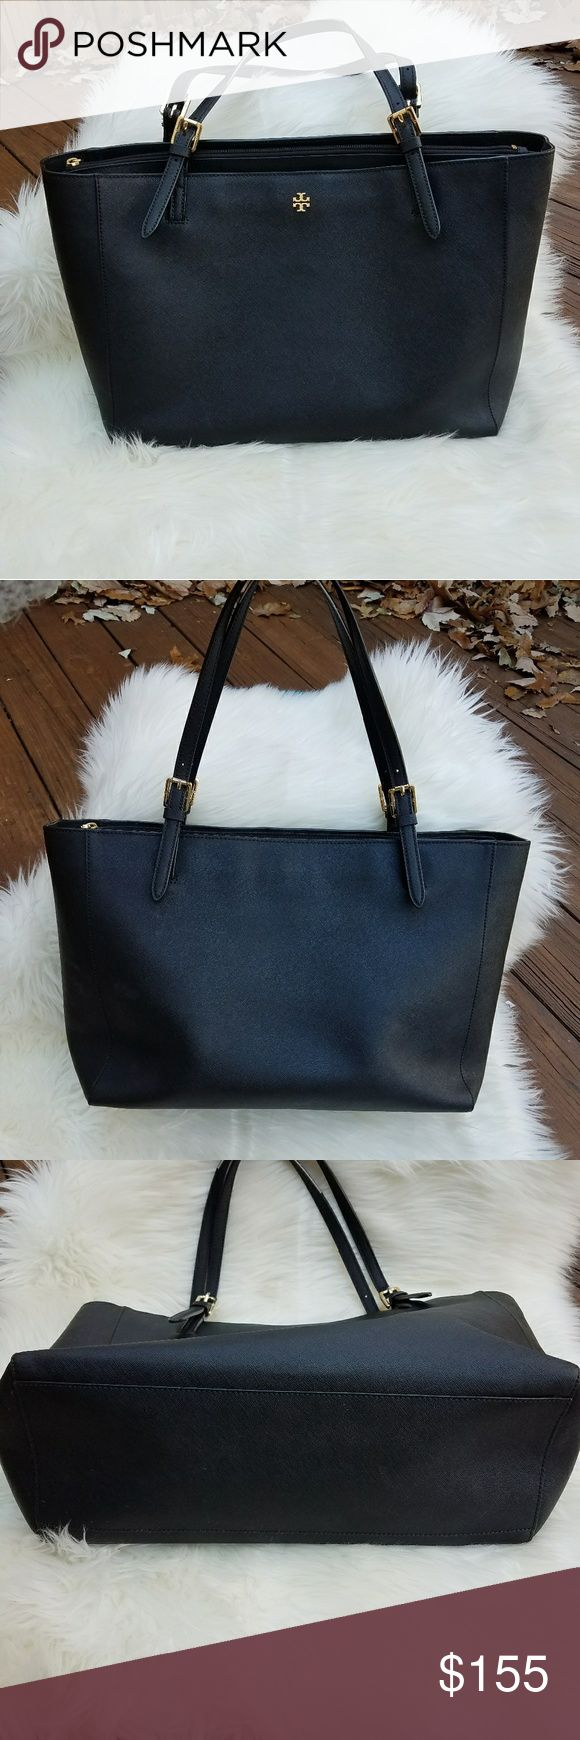 TORY BURCH Black Saffiano Leather York Buckle Tote TORY BURCH Black Saffiano Leather Buckle York Tote Bag with Gold Hardware.  Gorgeous go to bag that holds everything with style! Has some fraying on straps.    Large Size Tory Burch Bags Totes